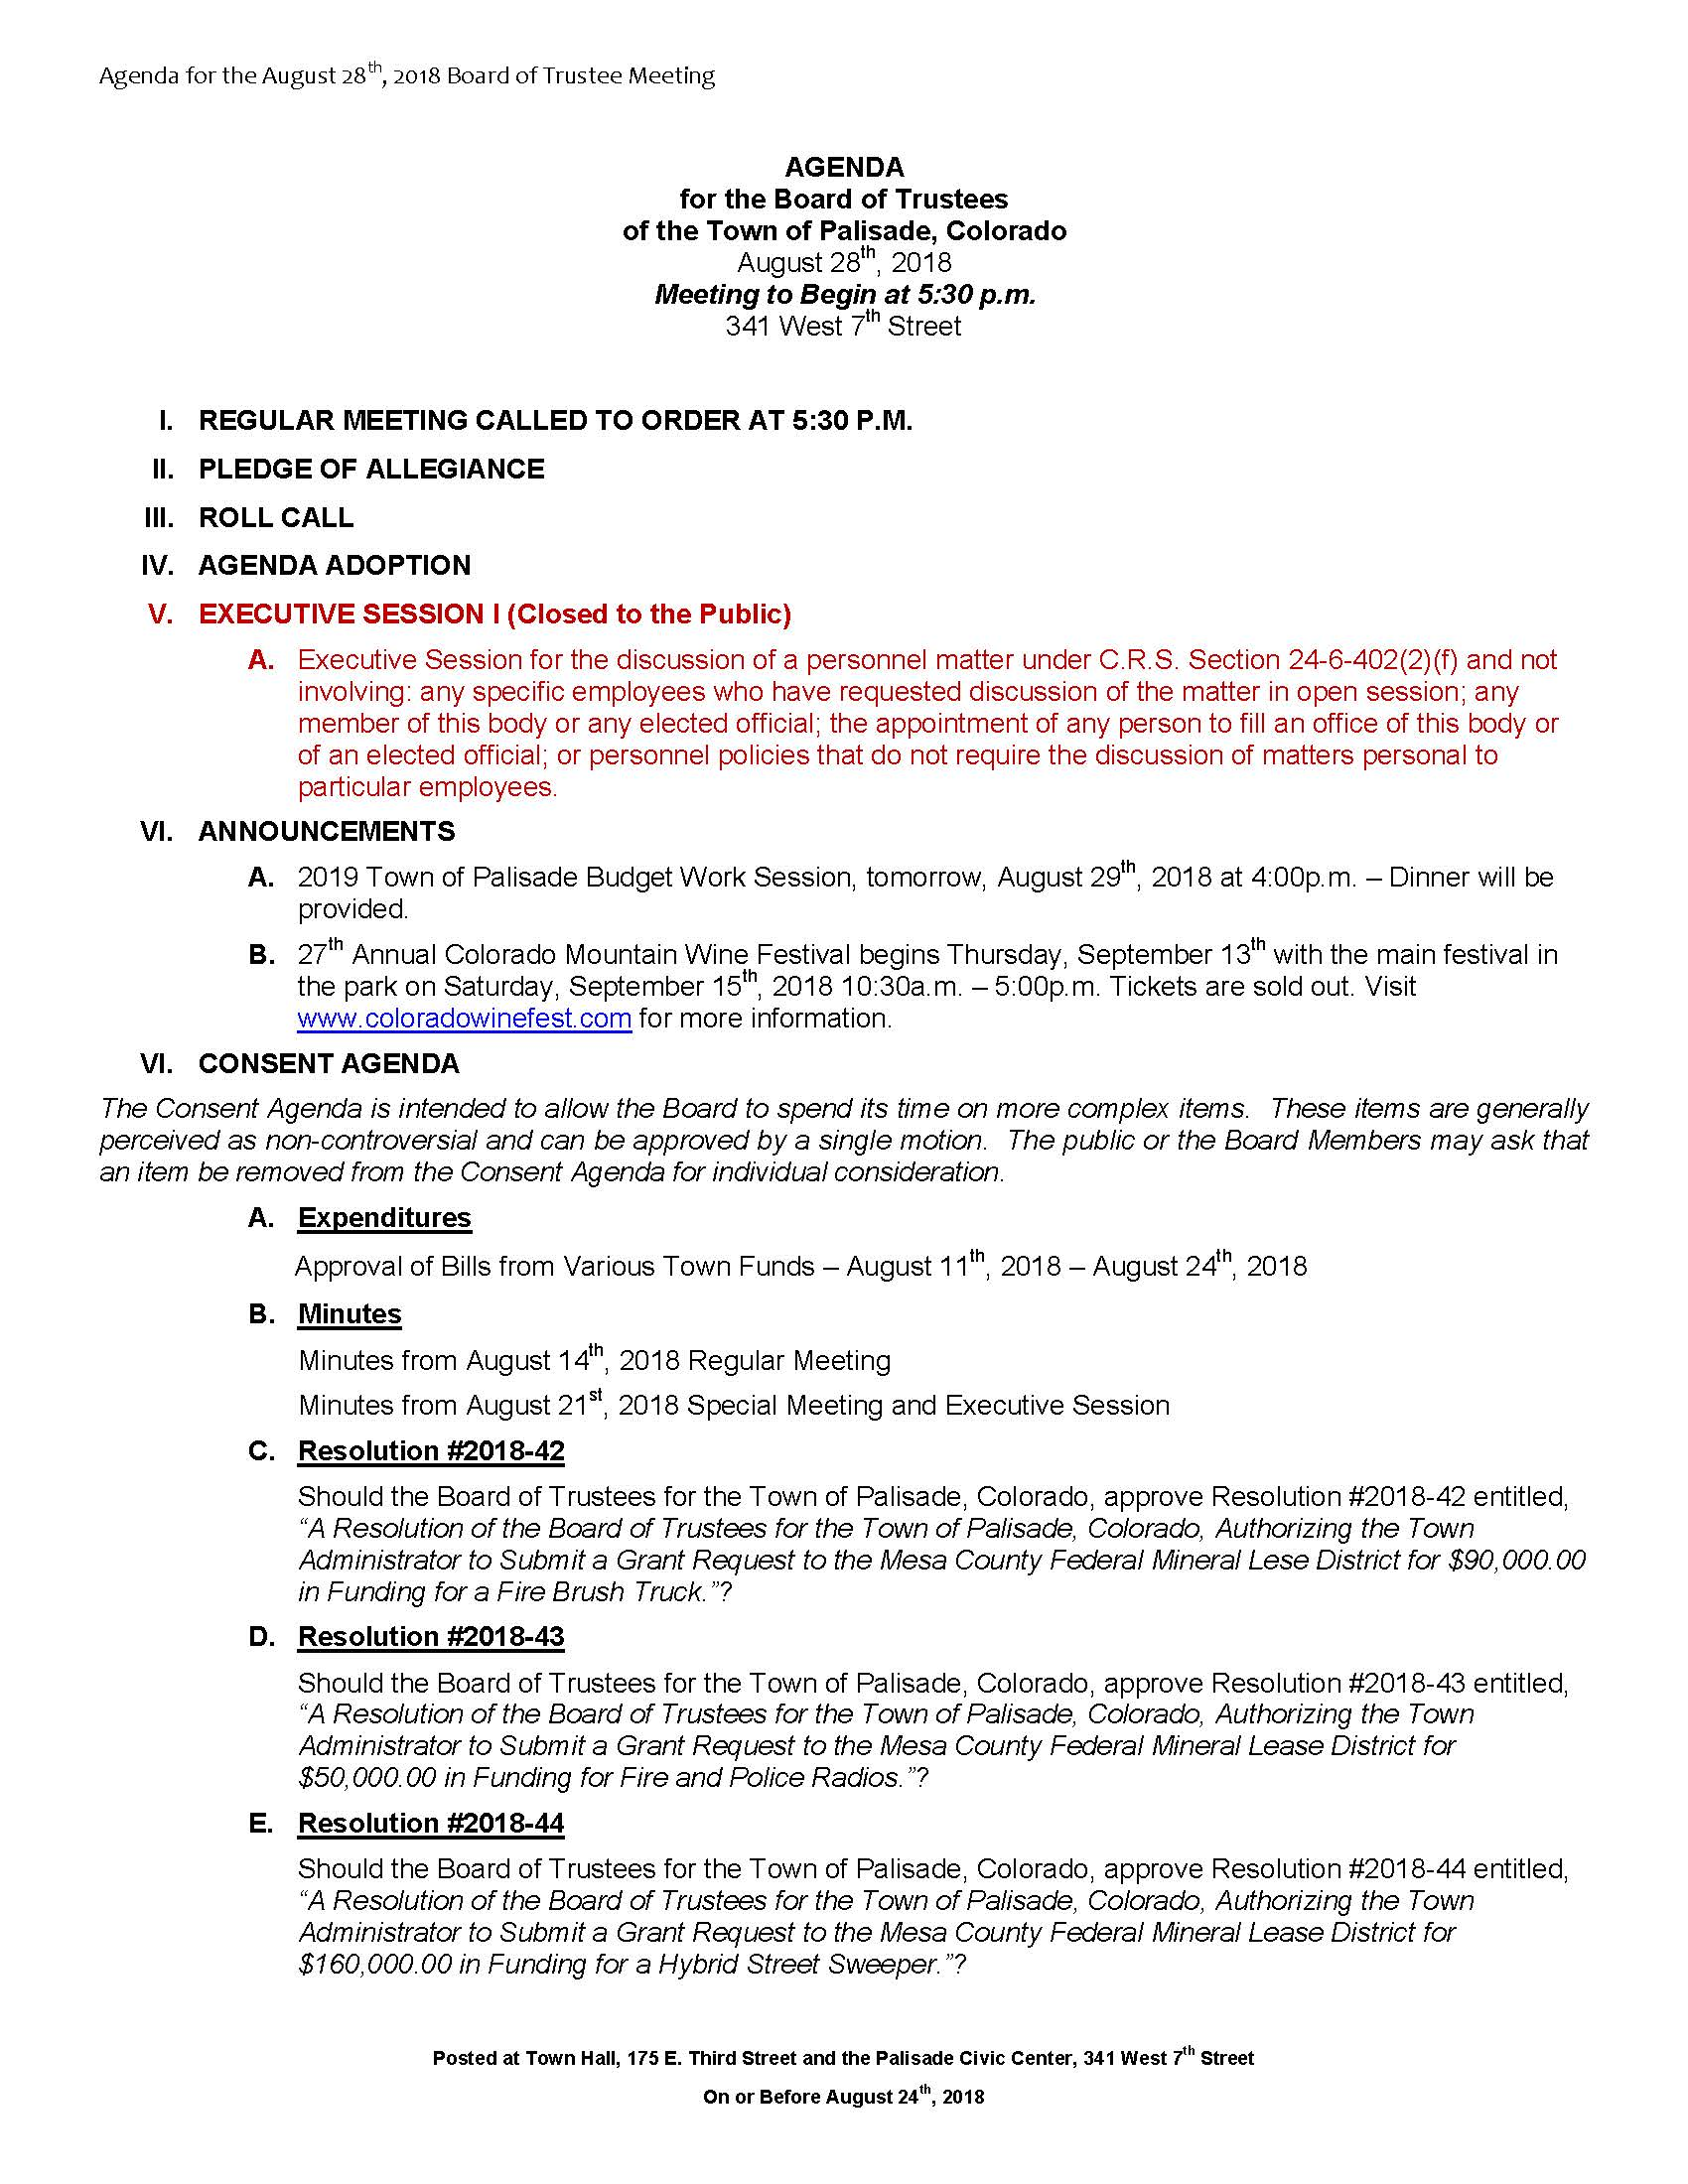 August 28th 2018 Board Meeting Agenda Page 1